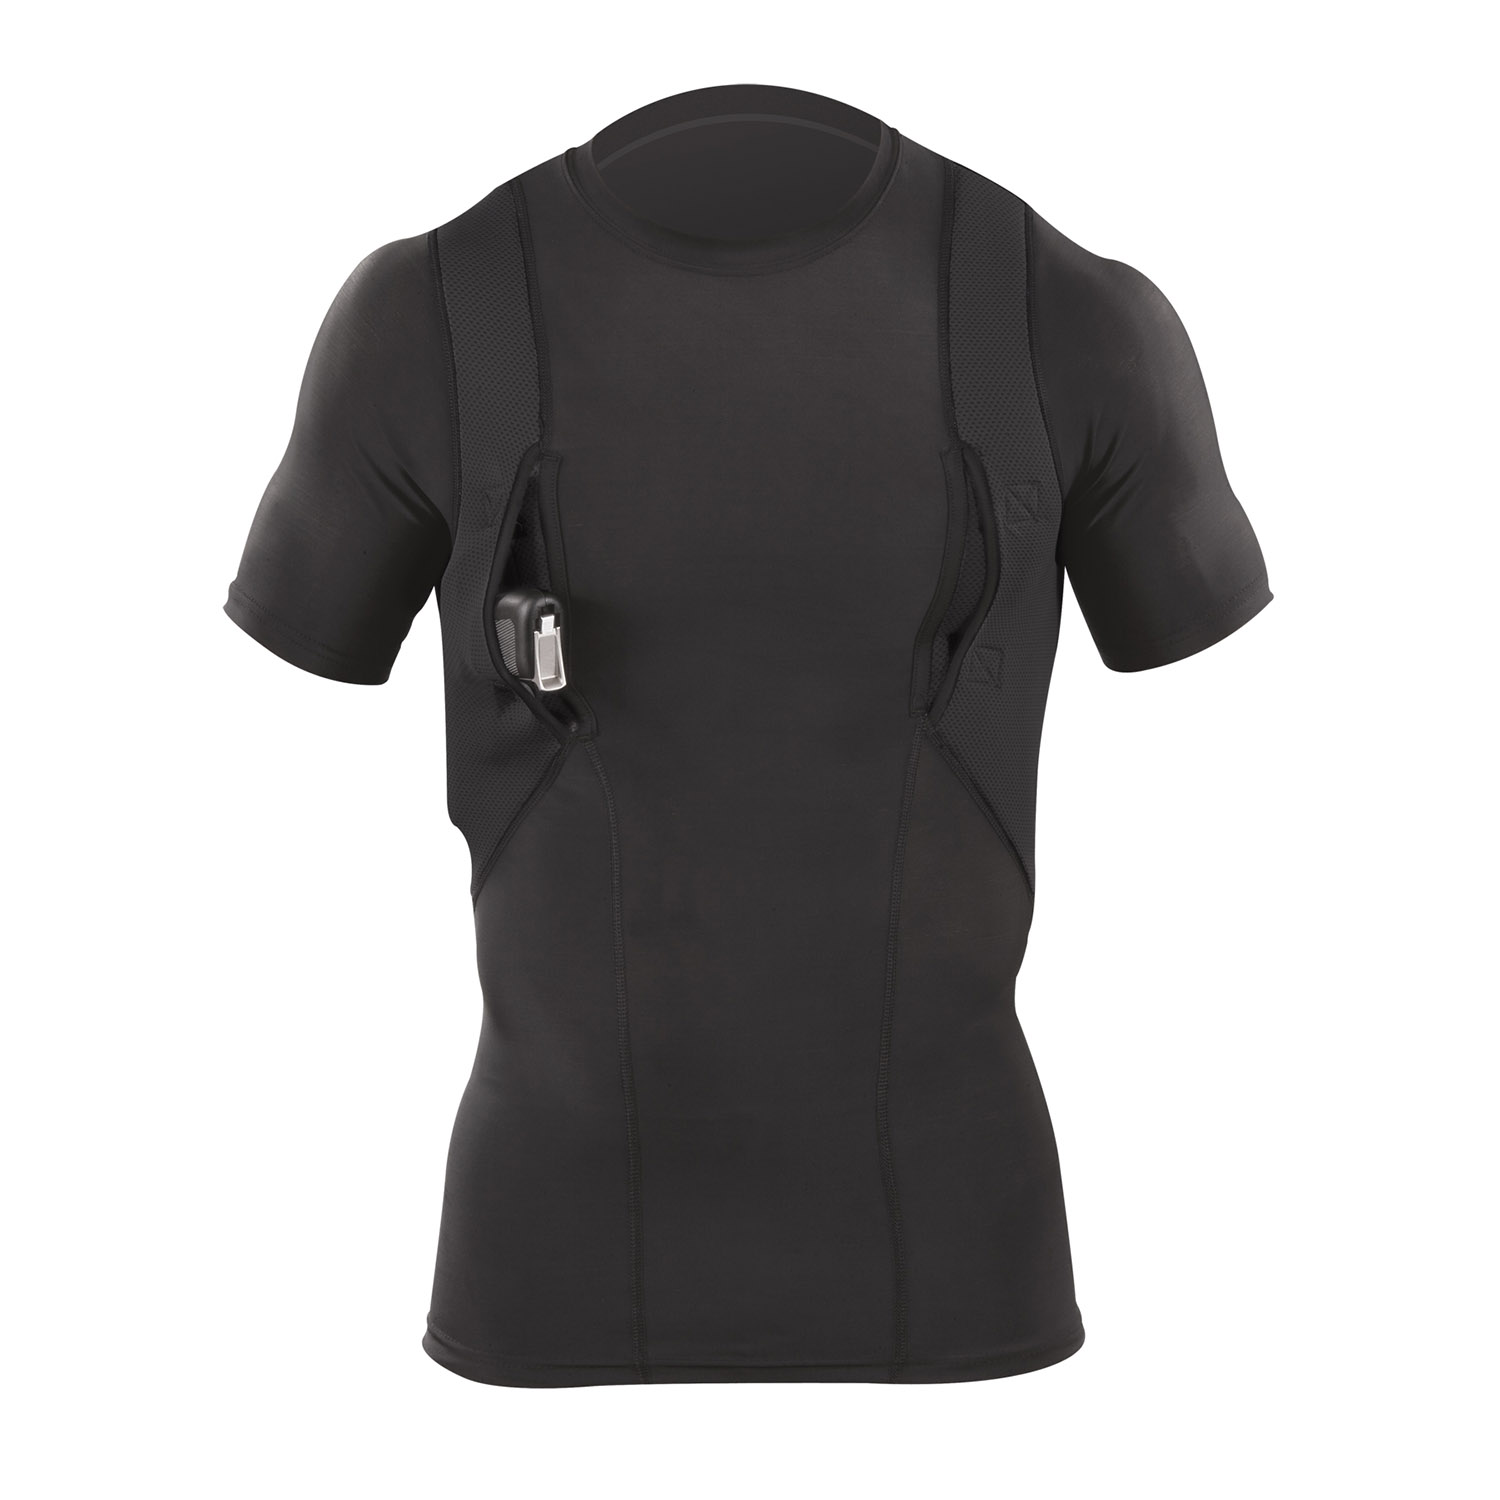 5.11 Tactical Holster Shirt Crew Neck